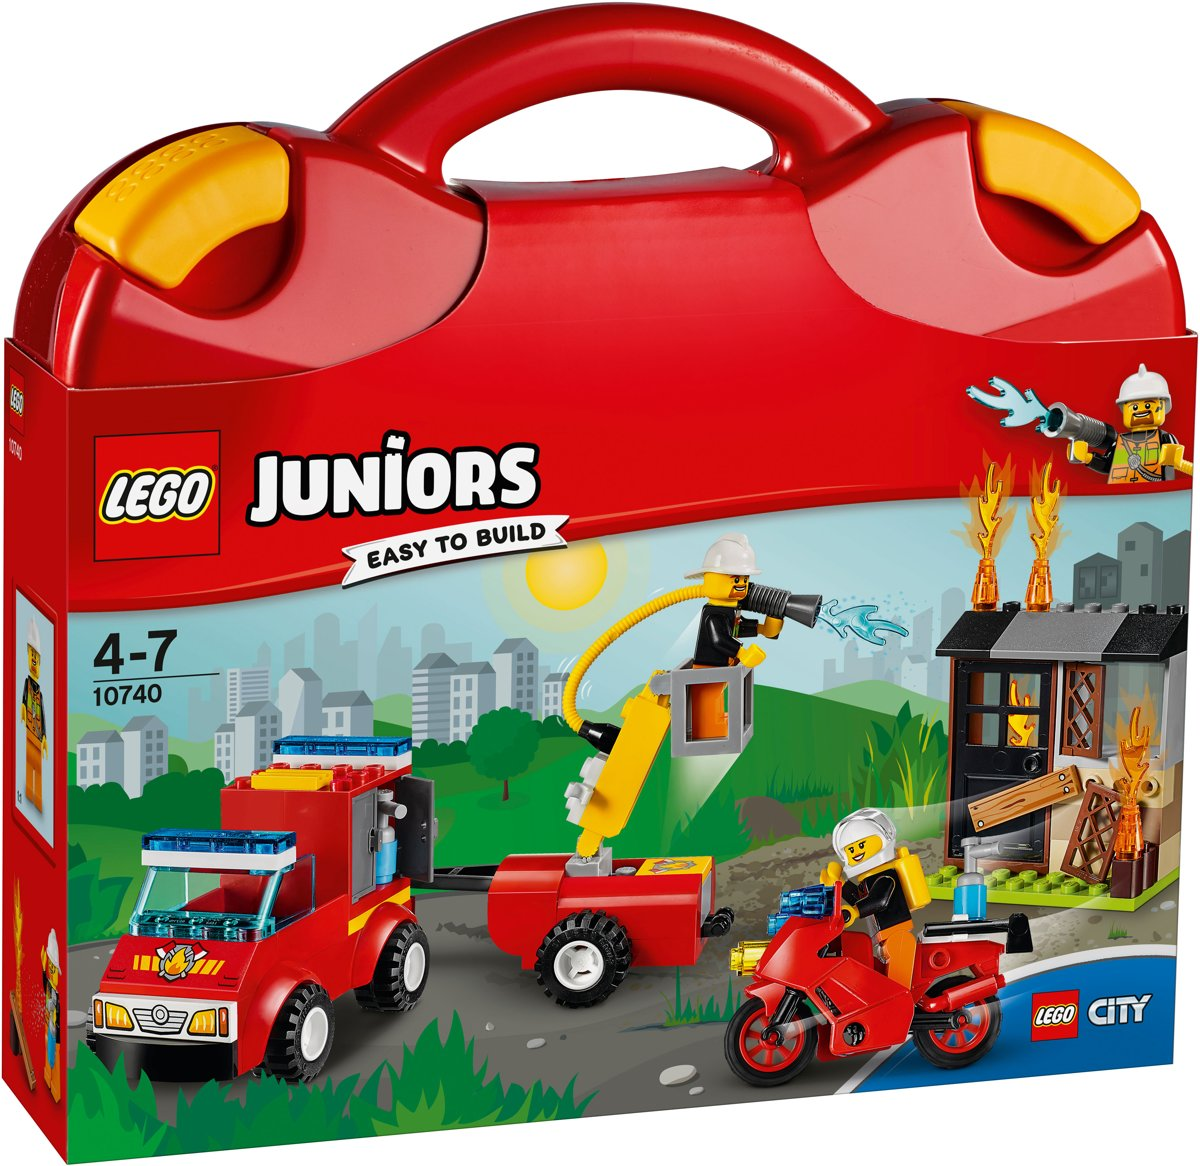 LEGO Juniors City Brandweerkoffer - 10740